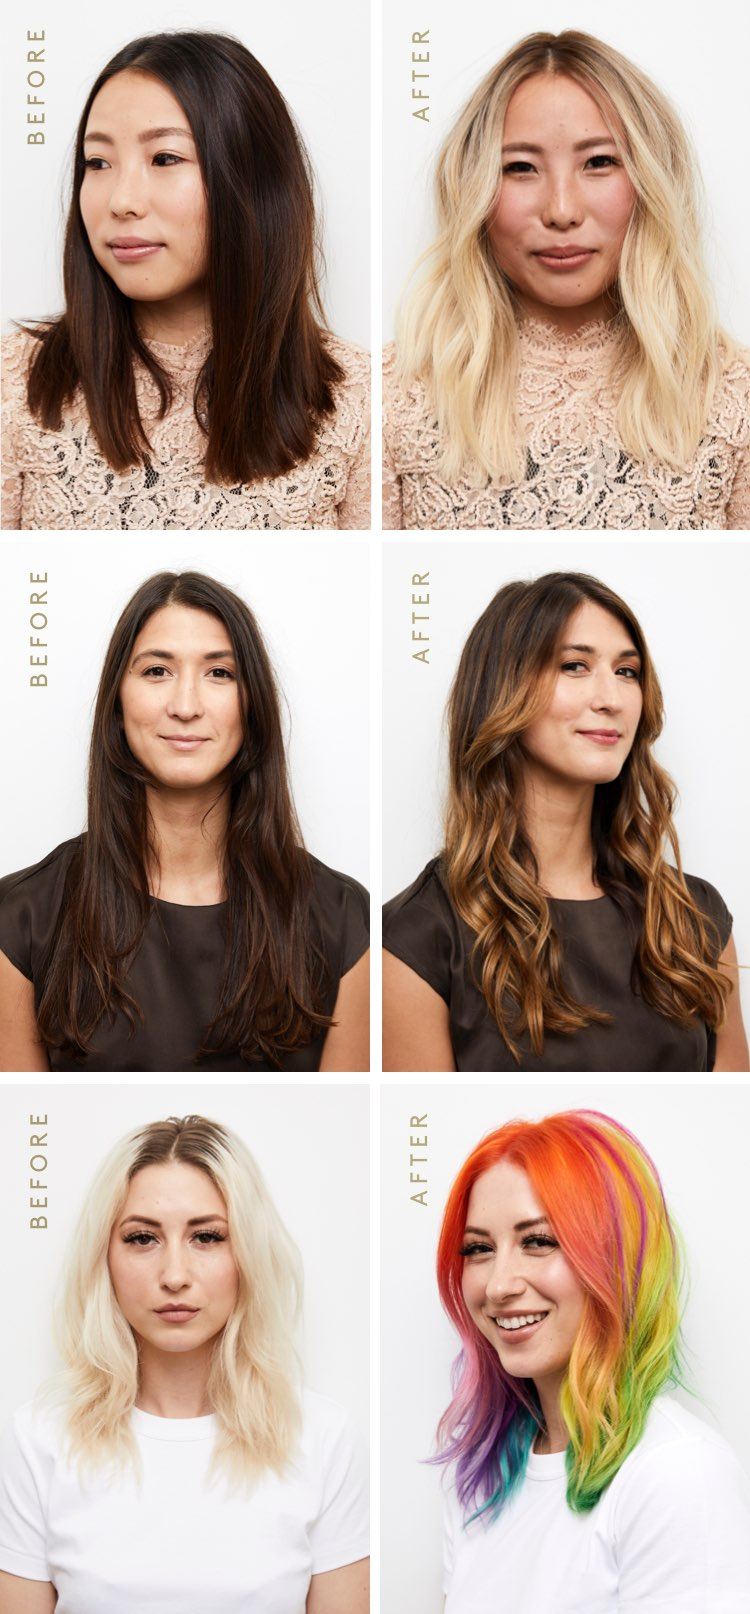 Hair Transformations with ColorKick™